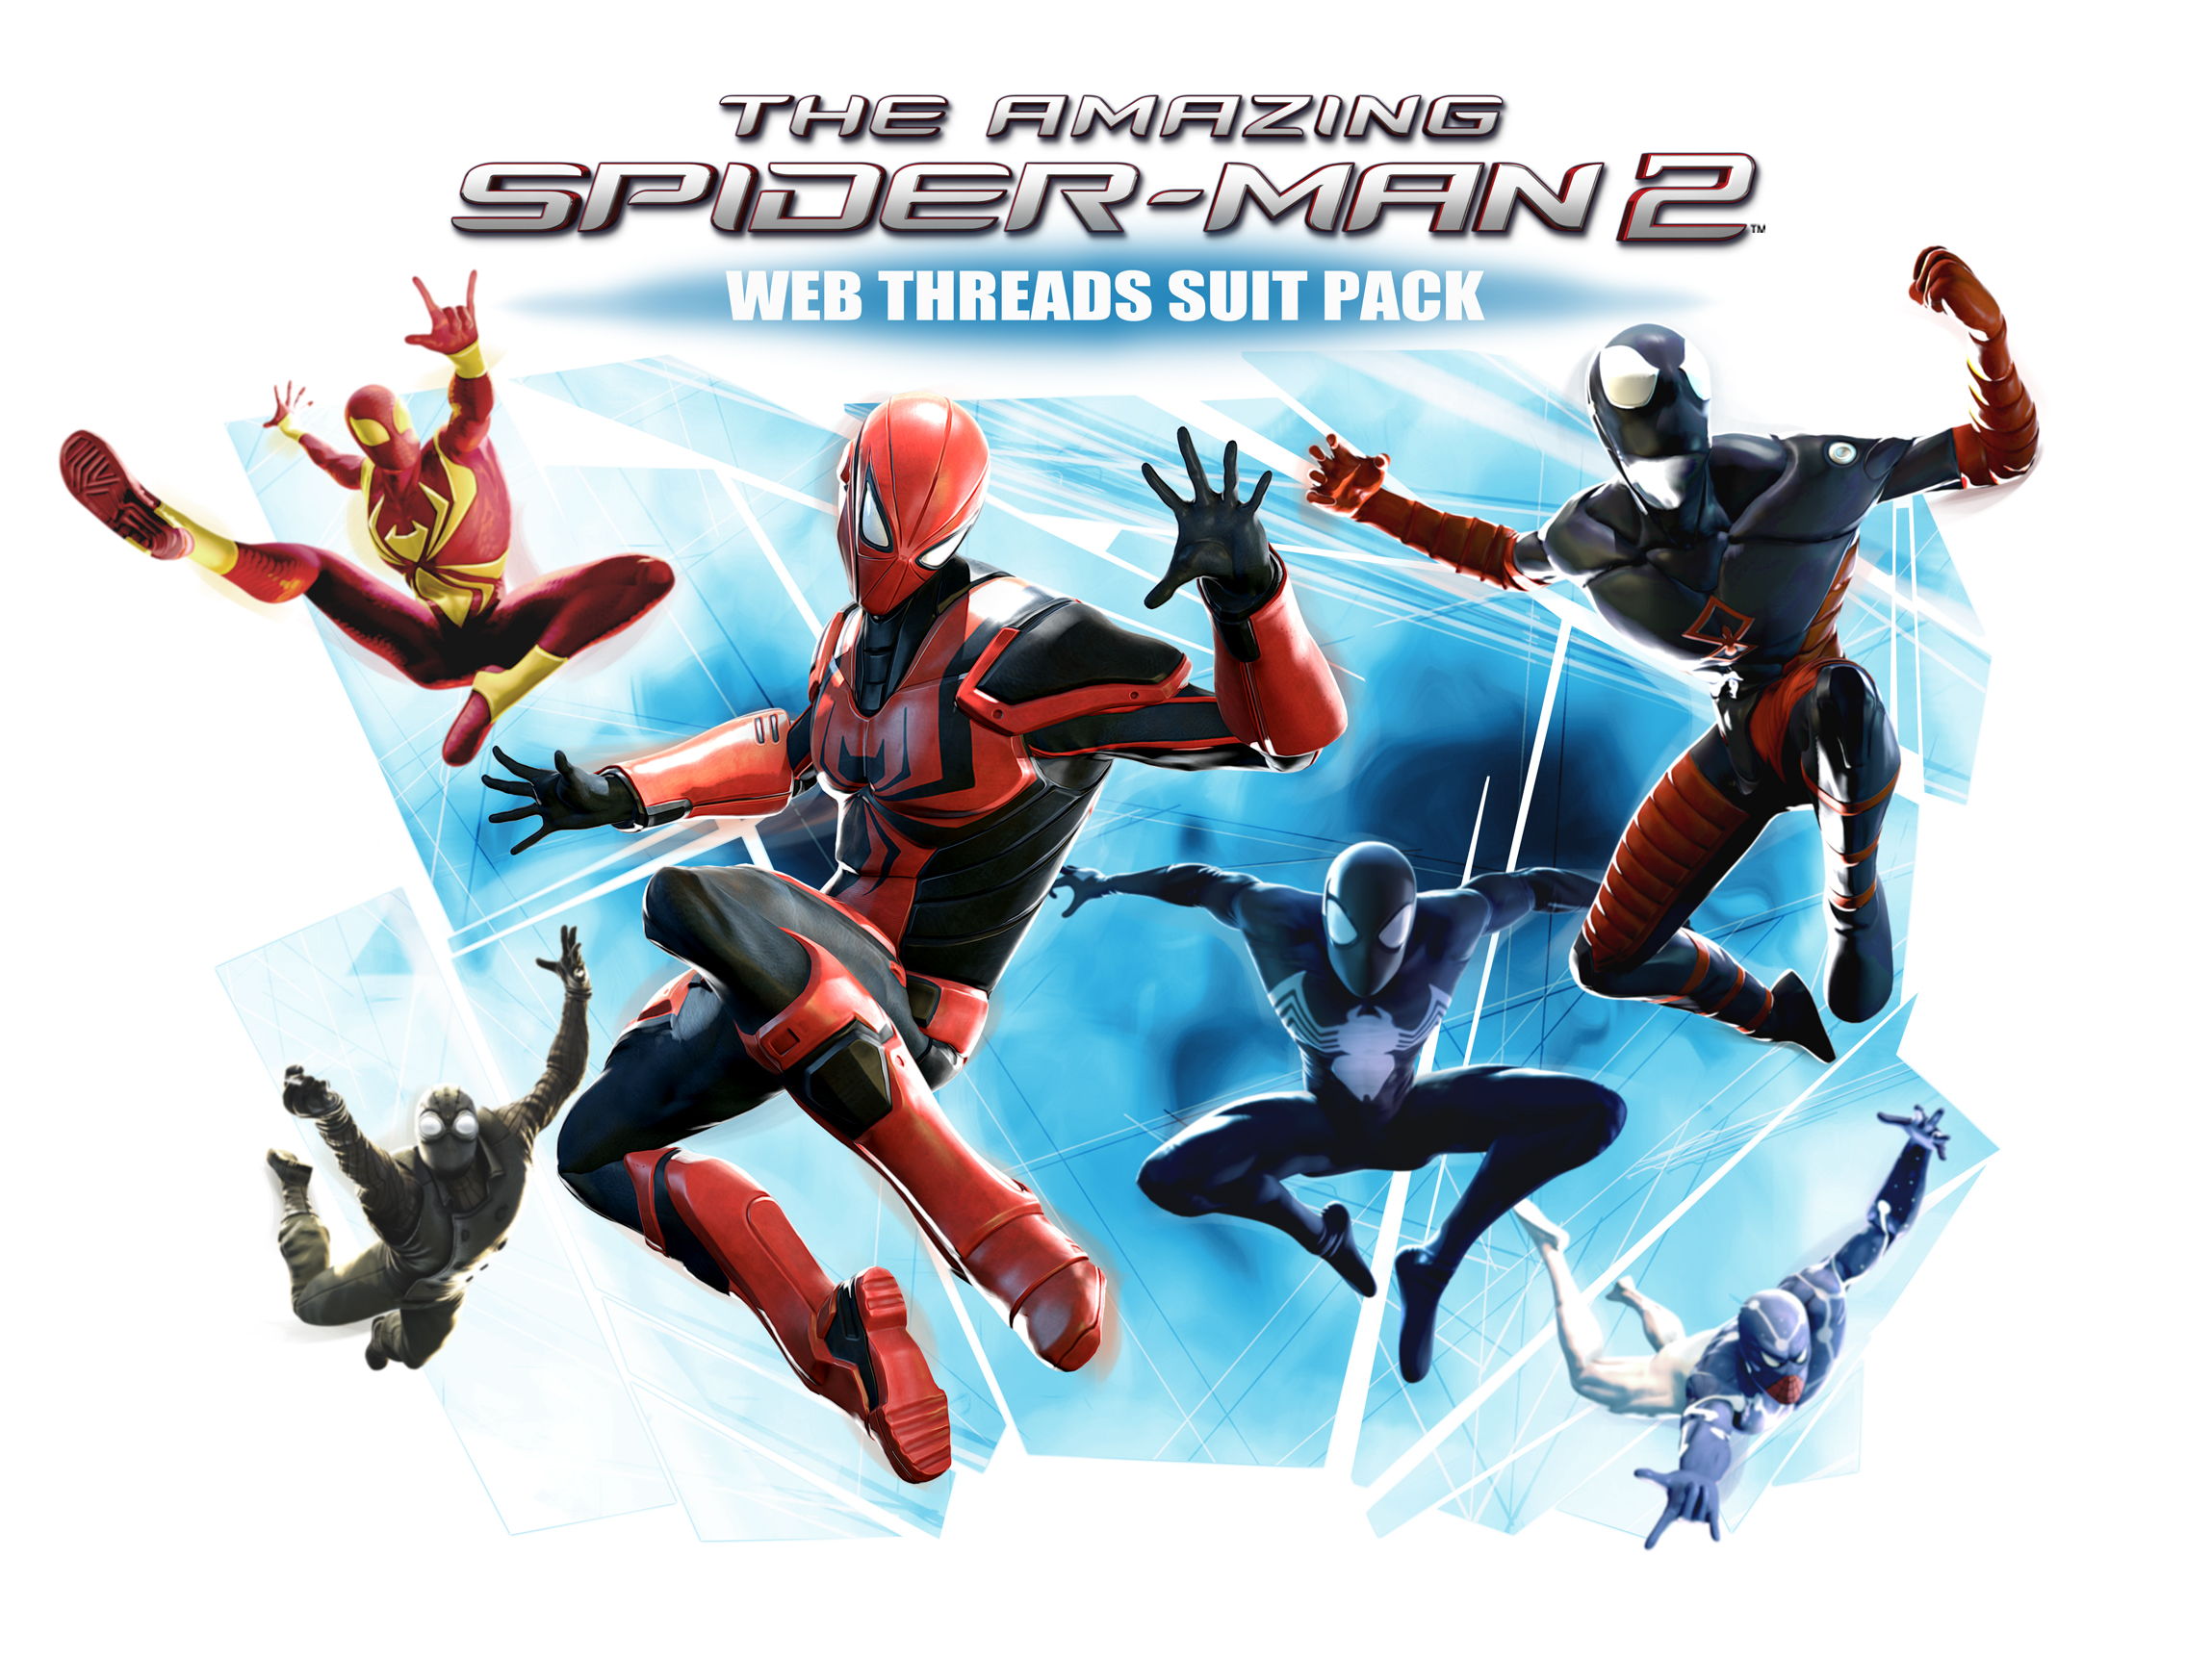 Spideyu0027s Web Threads available now for download  sc 1 st  Brutal Gamer & The Amazing Spider-Man 2 Archives | Brutal Gamer